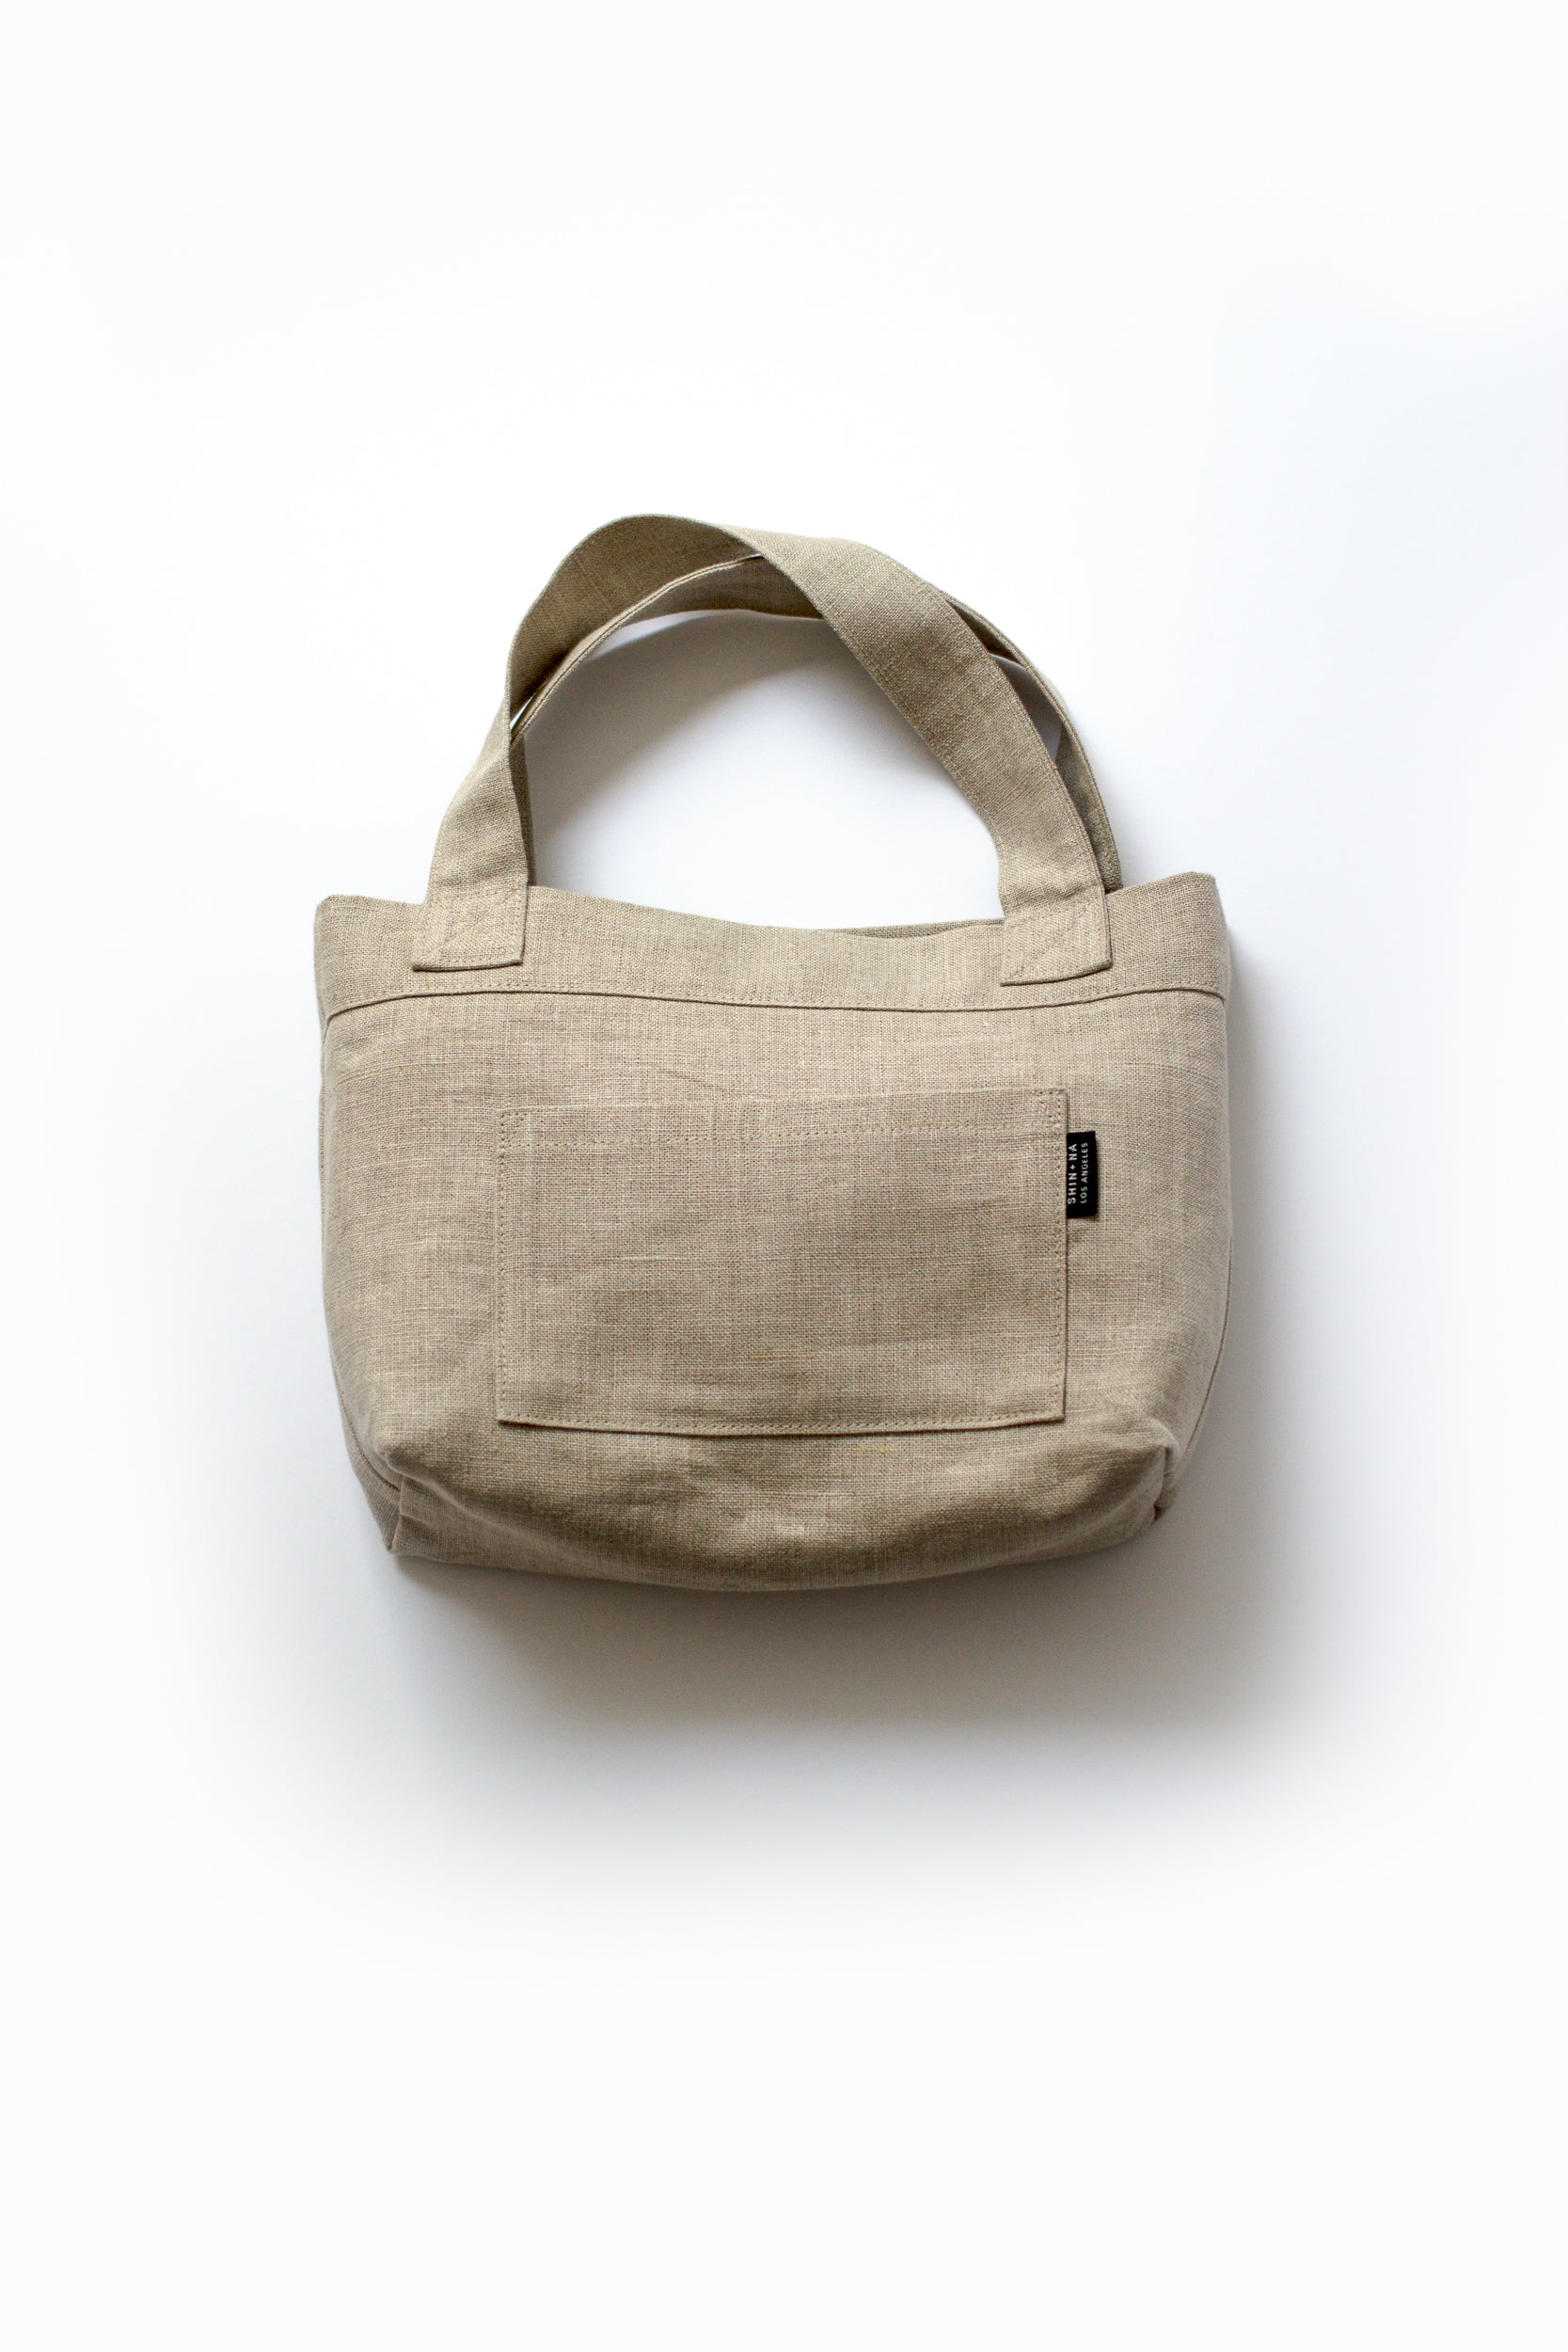 front view with four by seven inch pocket